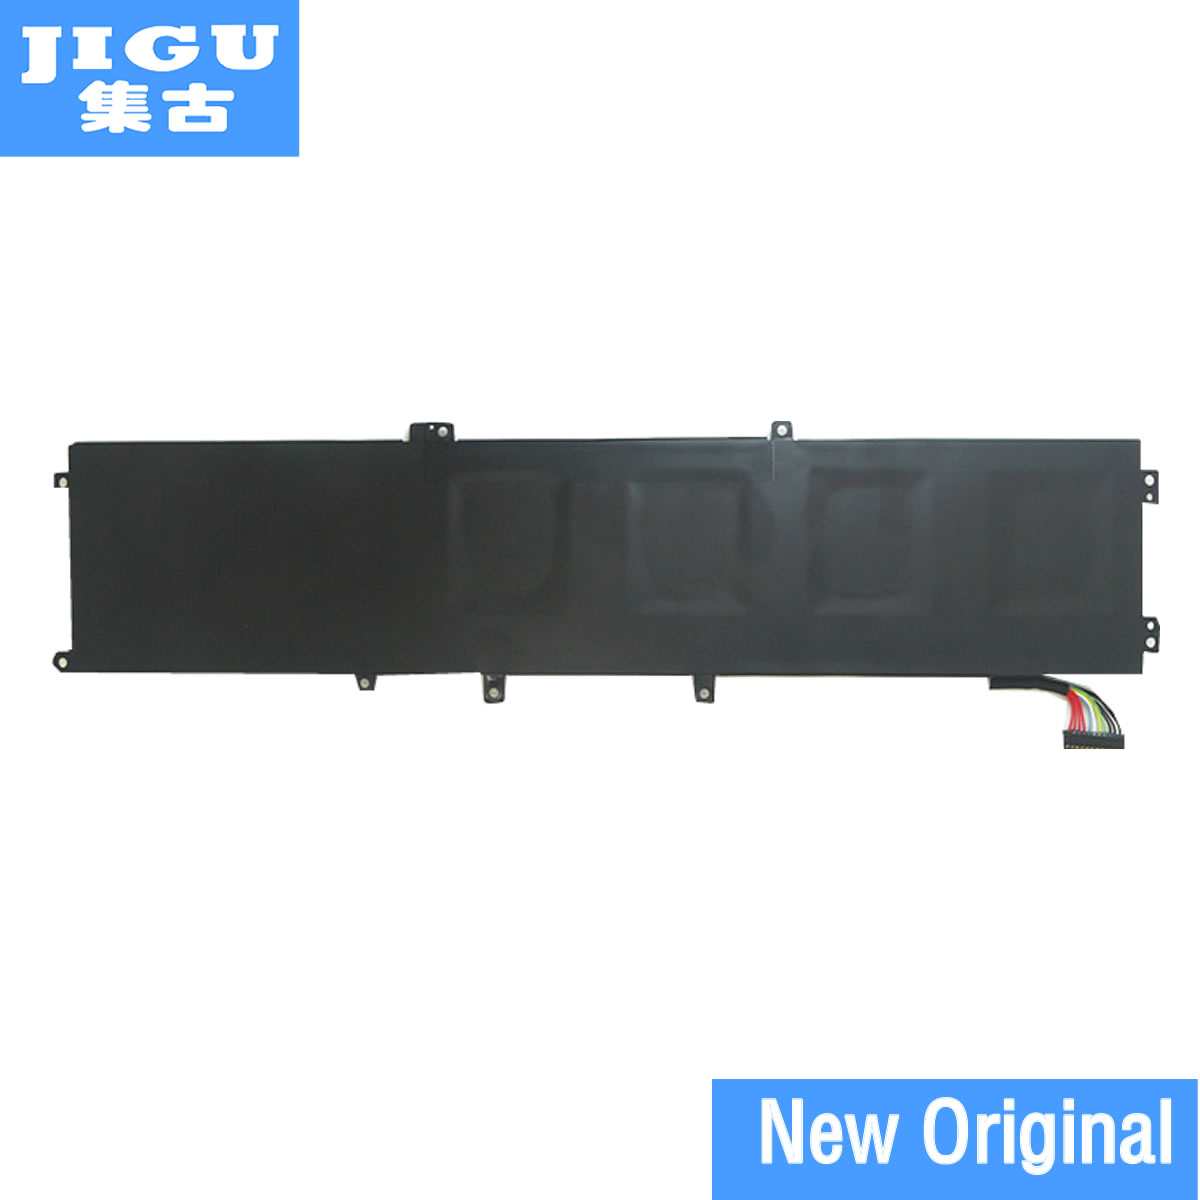 JIGU Original laptop Battery 1P6KD 4GVGH RRCGW FOR DELL for Precision 5510 XPS 15 9550 jigu laptop battery for dell 8858x 8p3yx 911md vostro 3460 3560 latitude e6120 e6420 e6520 4400mah